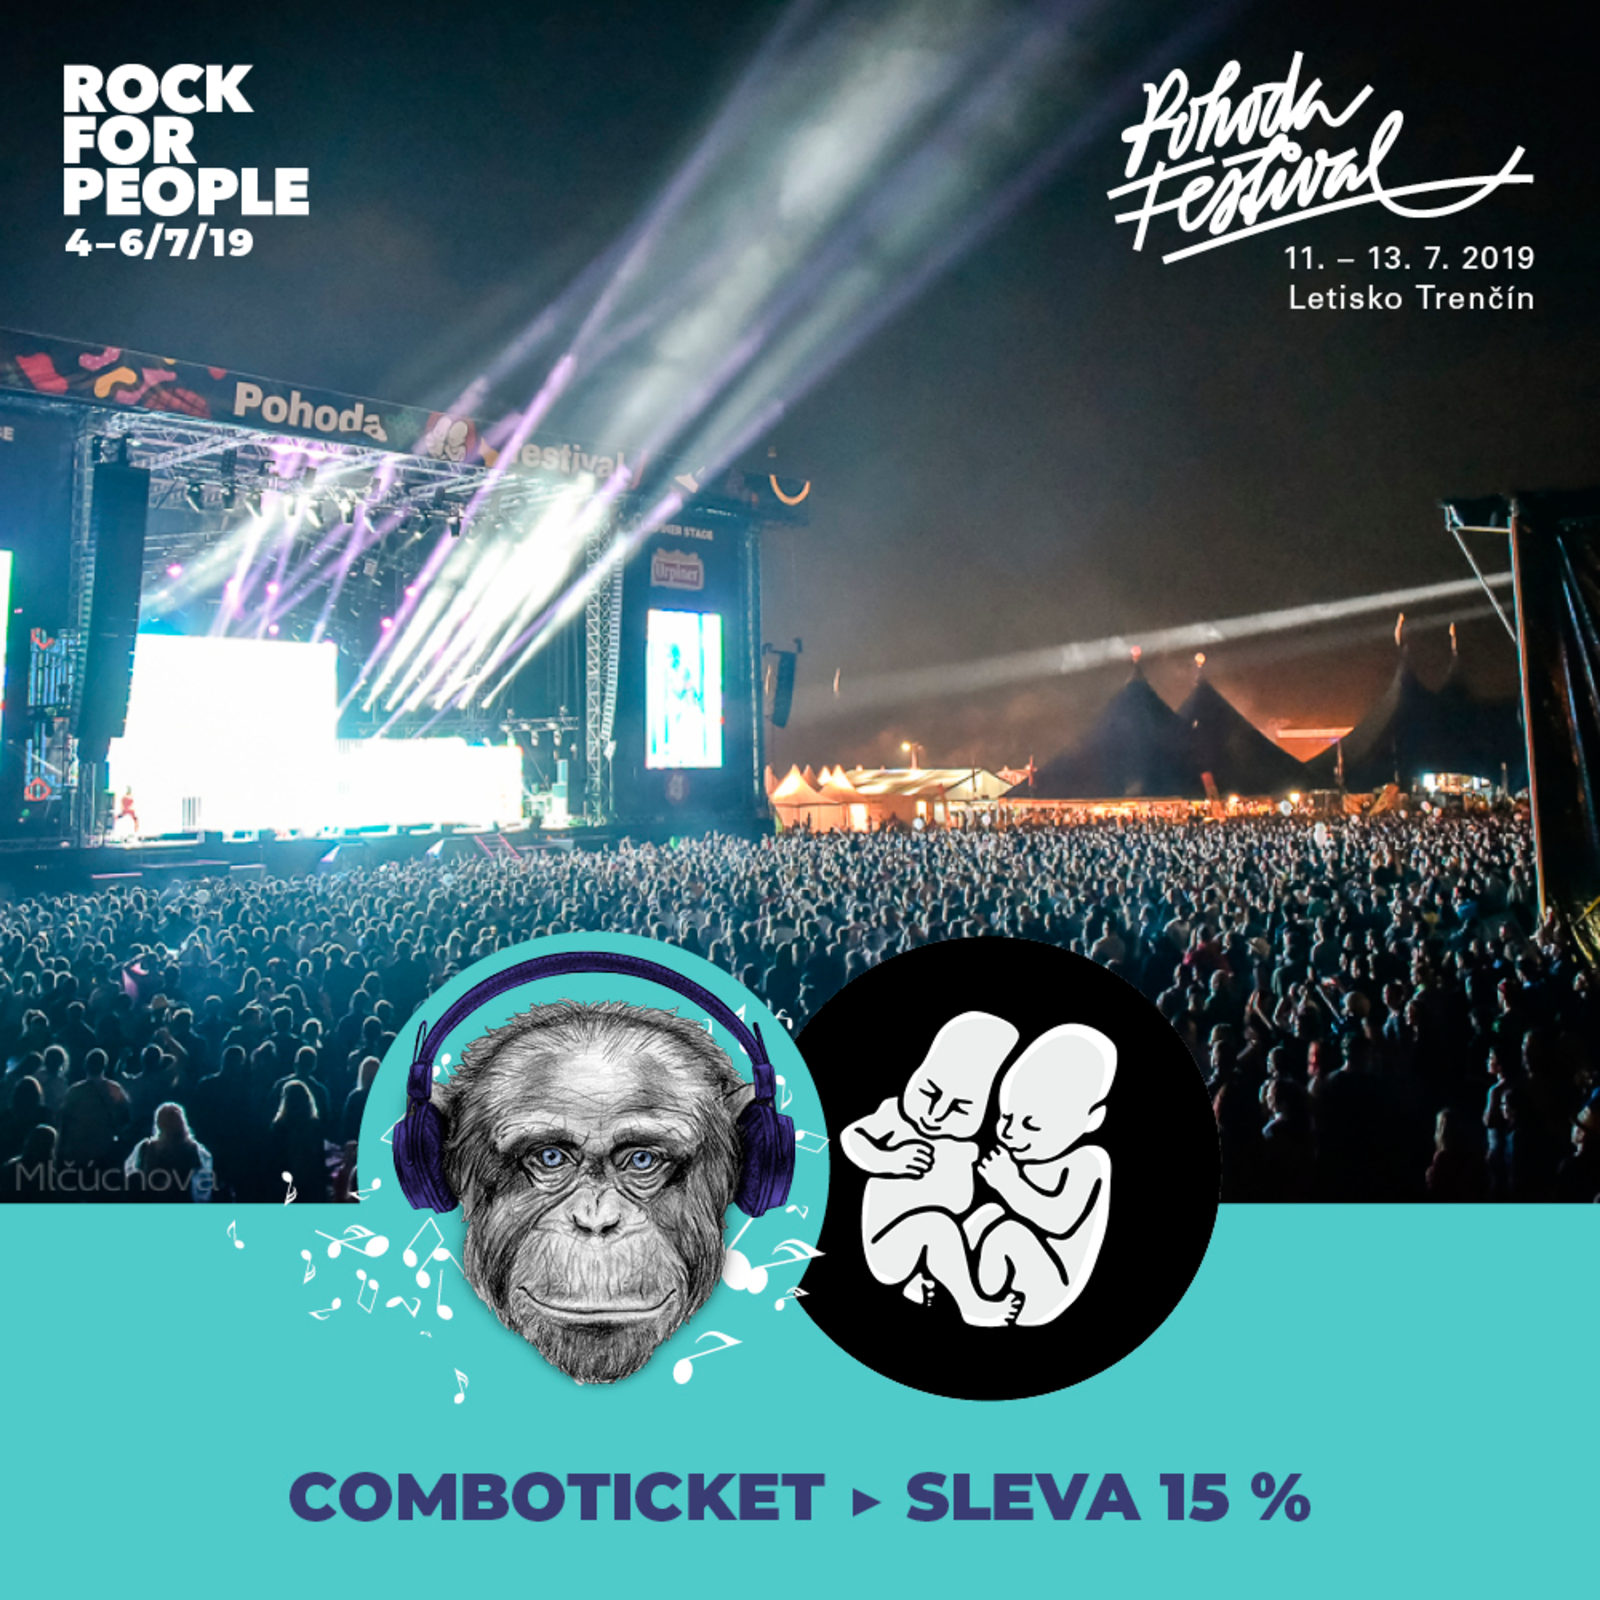 Combo tickets to Pohoda and Rock for People 2019 | Pohoda